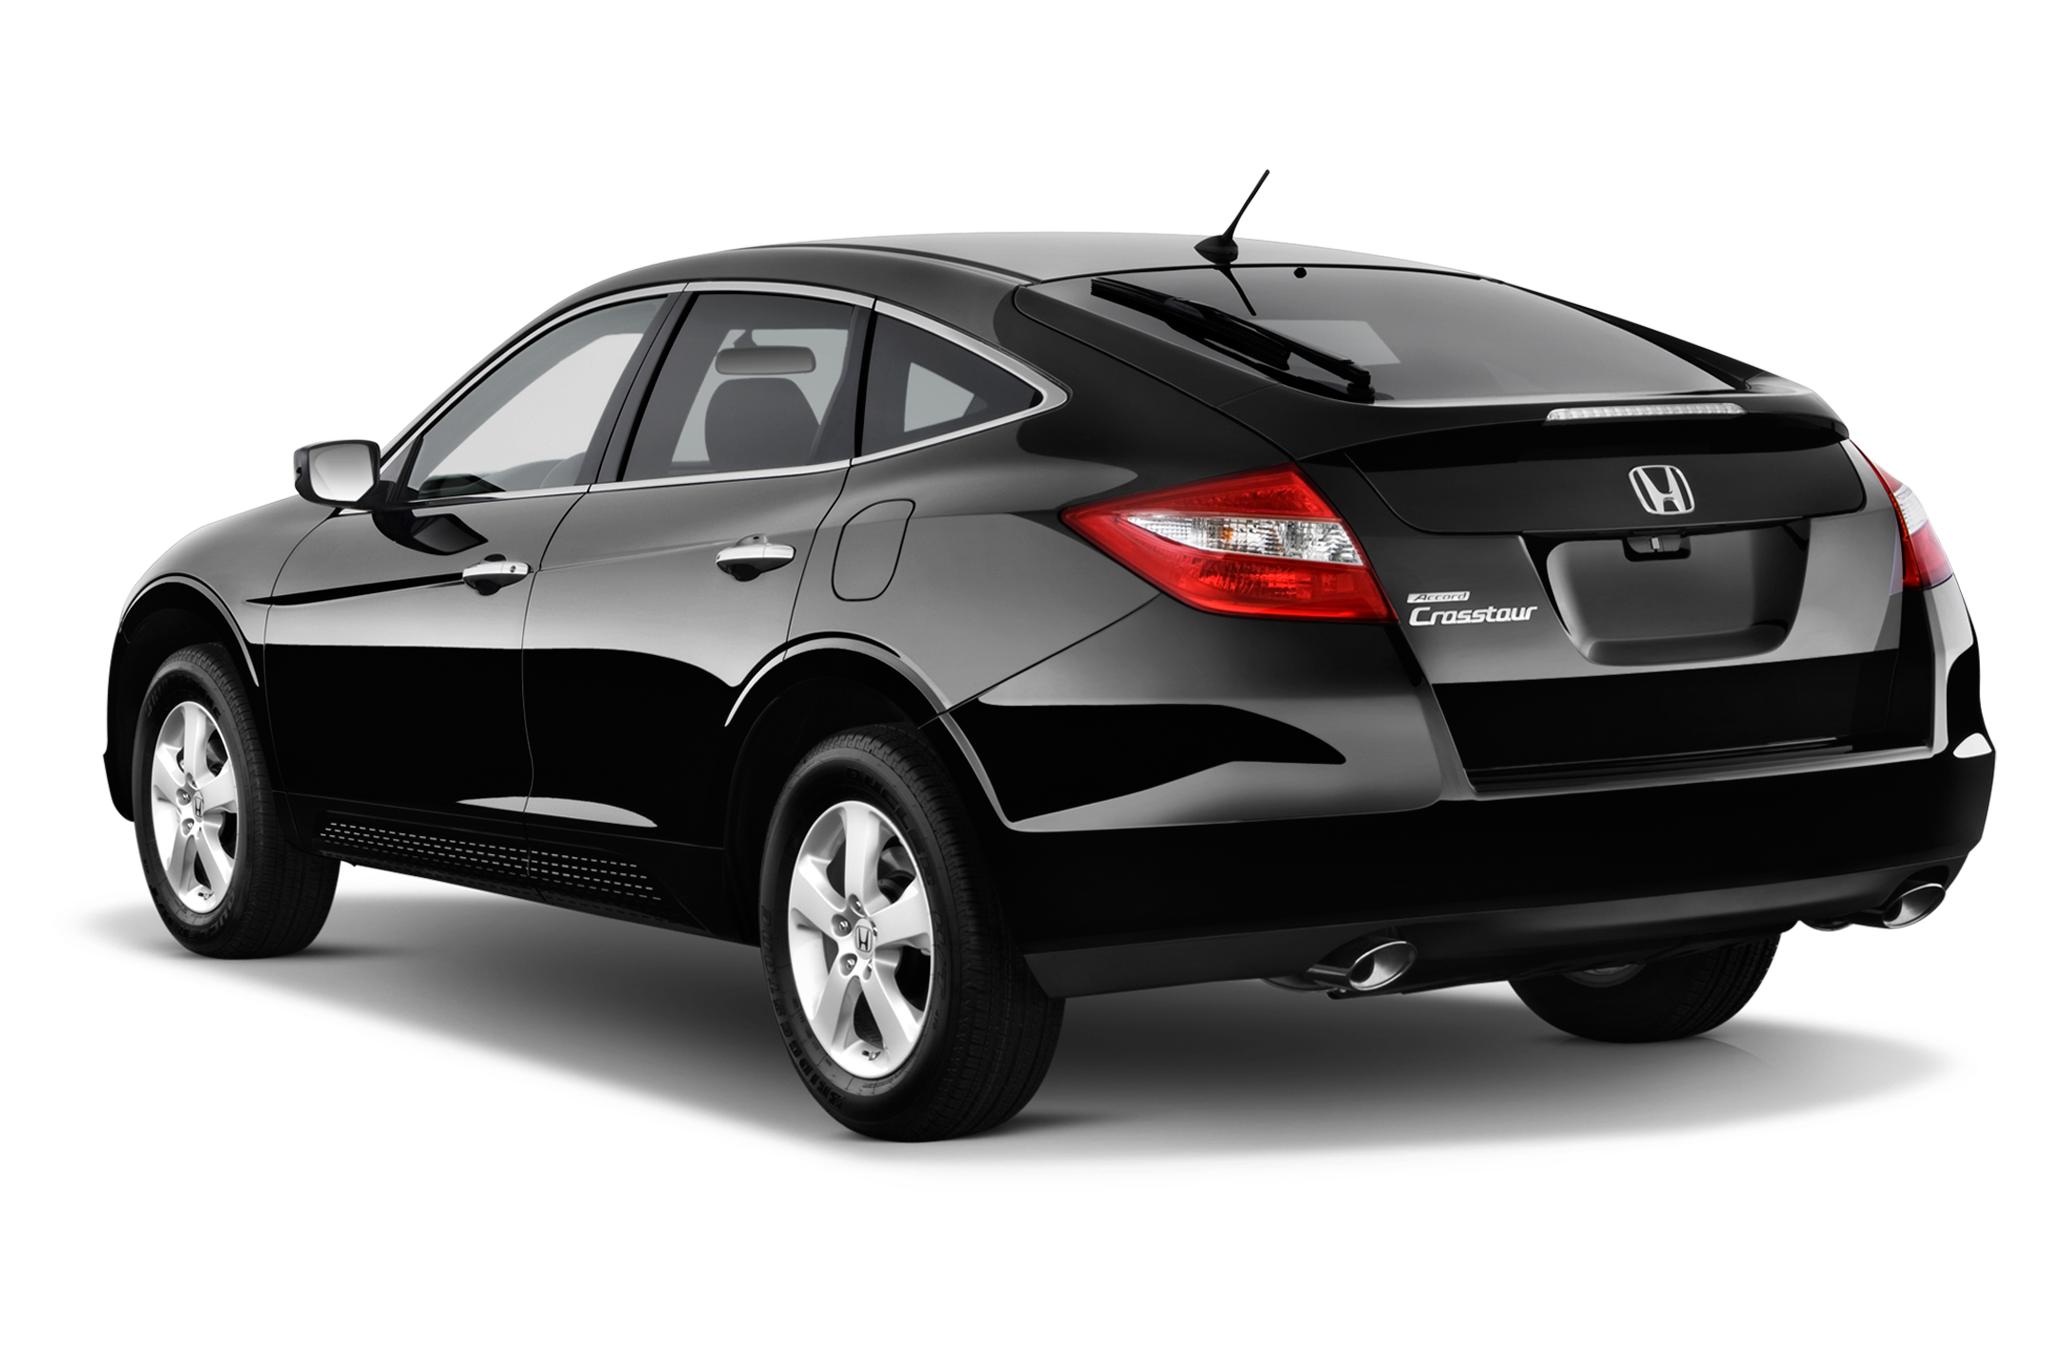 Honda Crosstour I 2009 - 2012 SUV 5 door #3